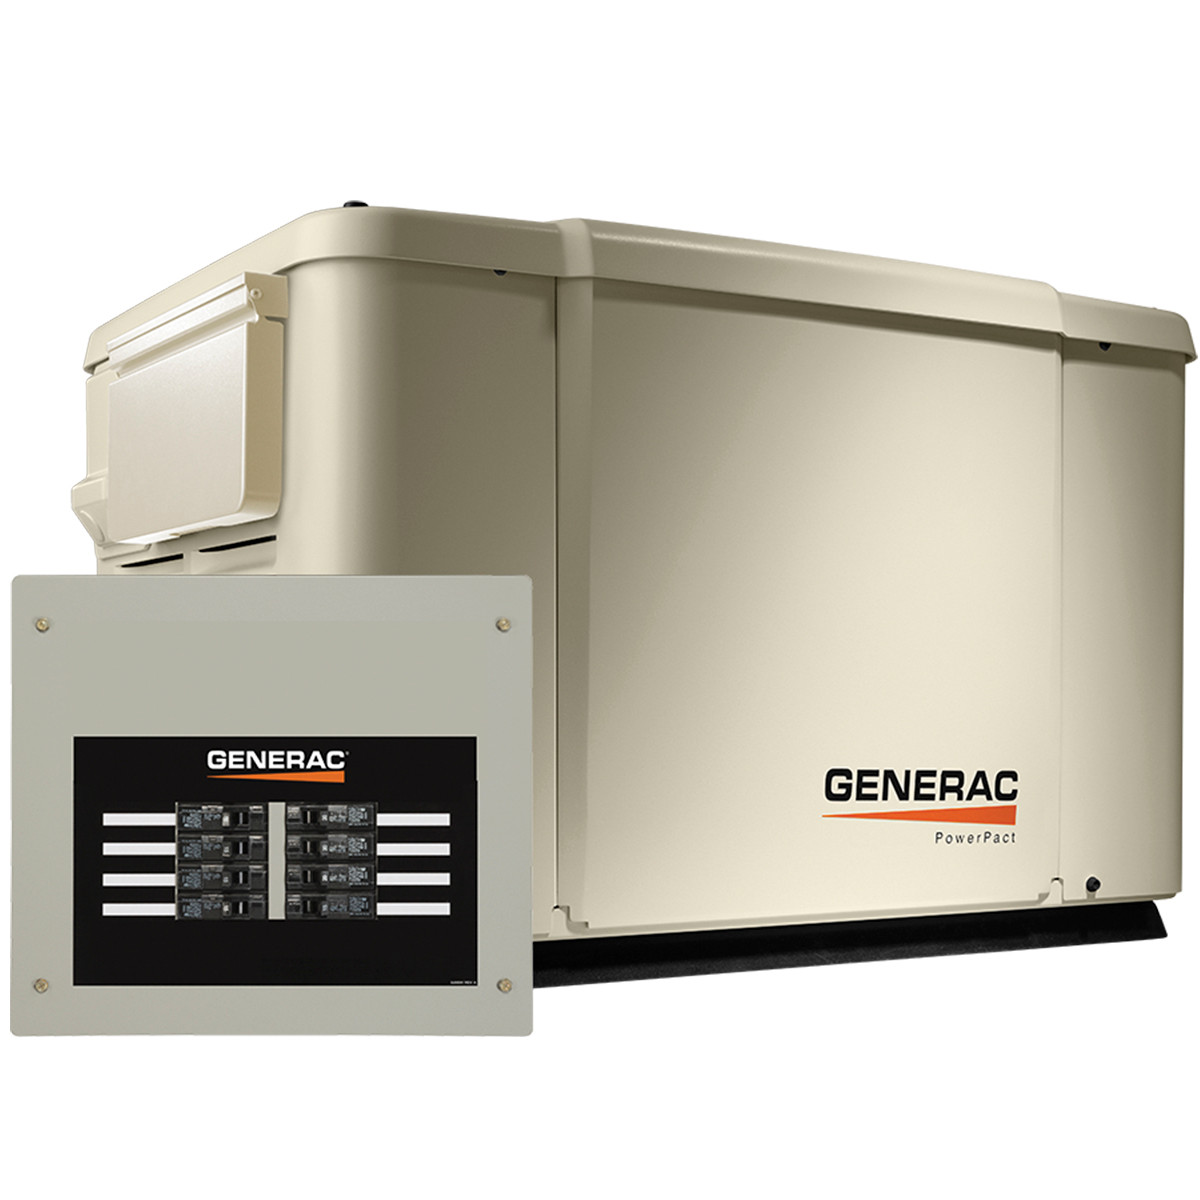 Generac 6998 PowerPact 7.5kW Generator with Wi-Fi & 50A 8-circuit Transfer on